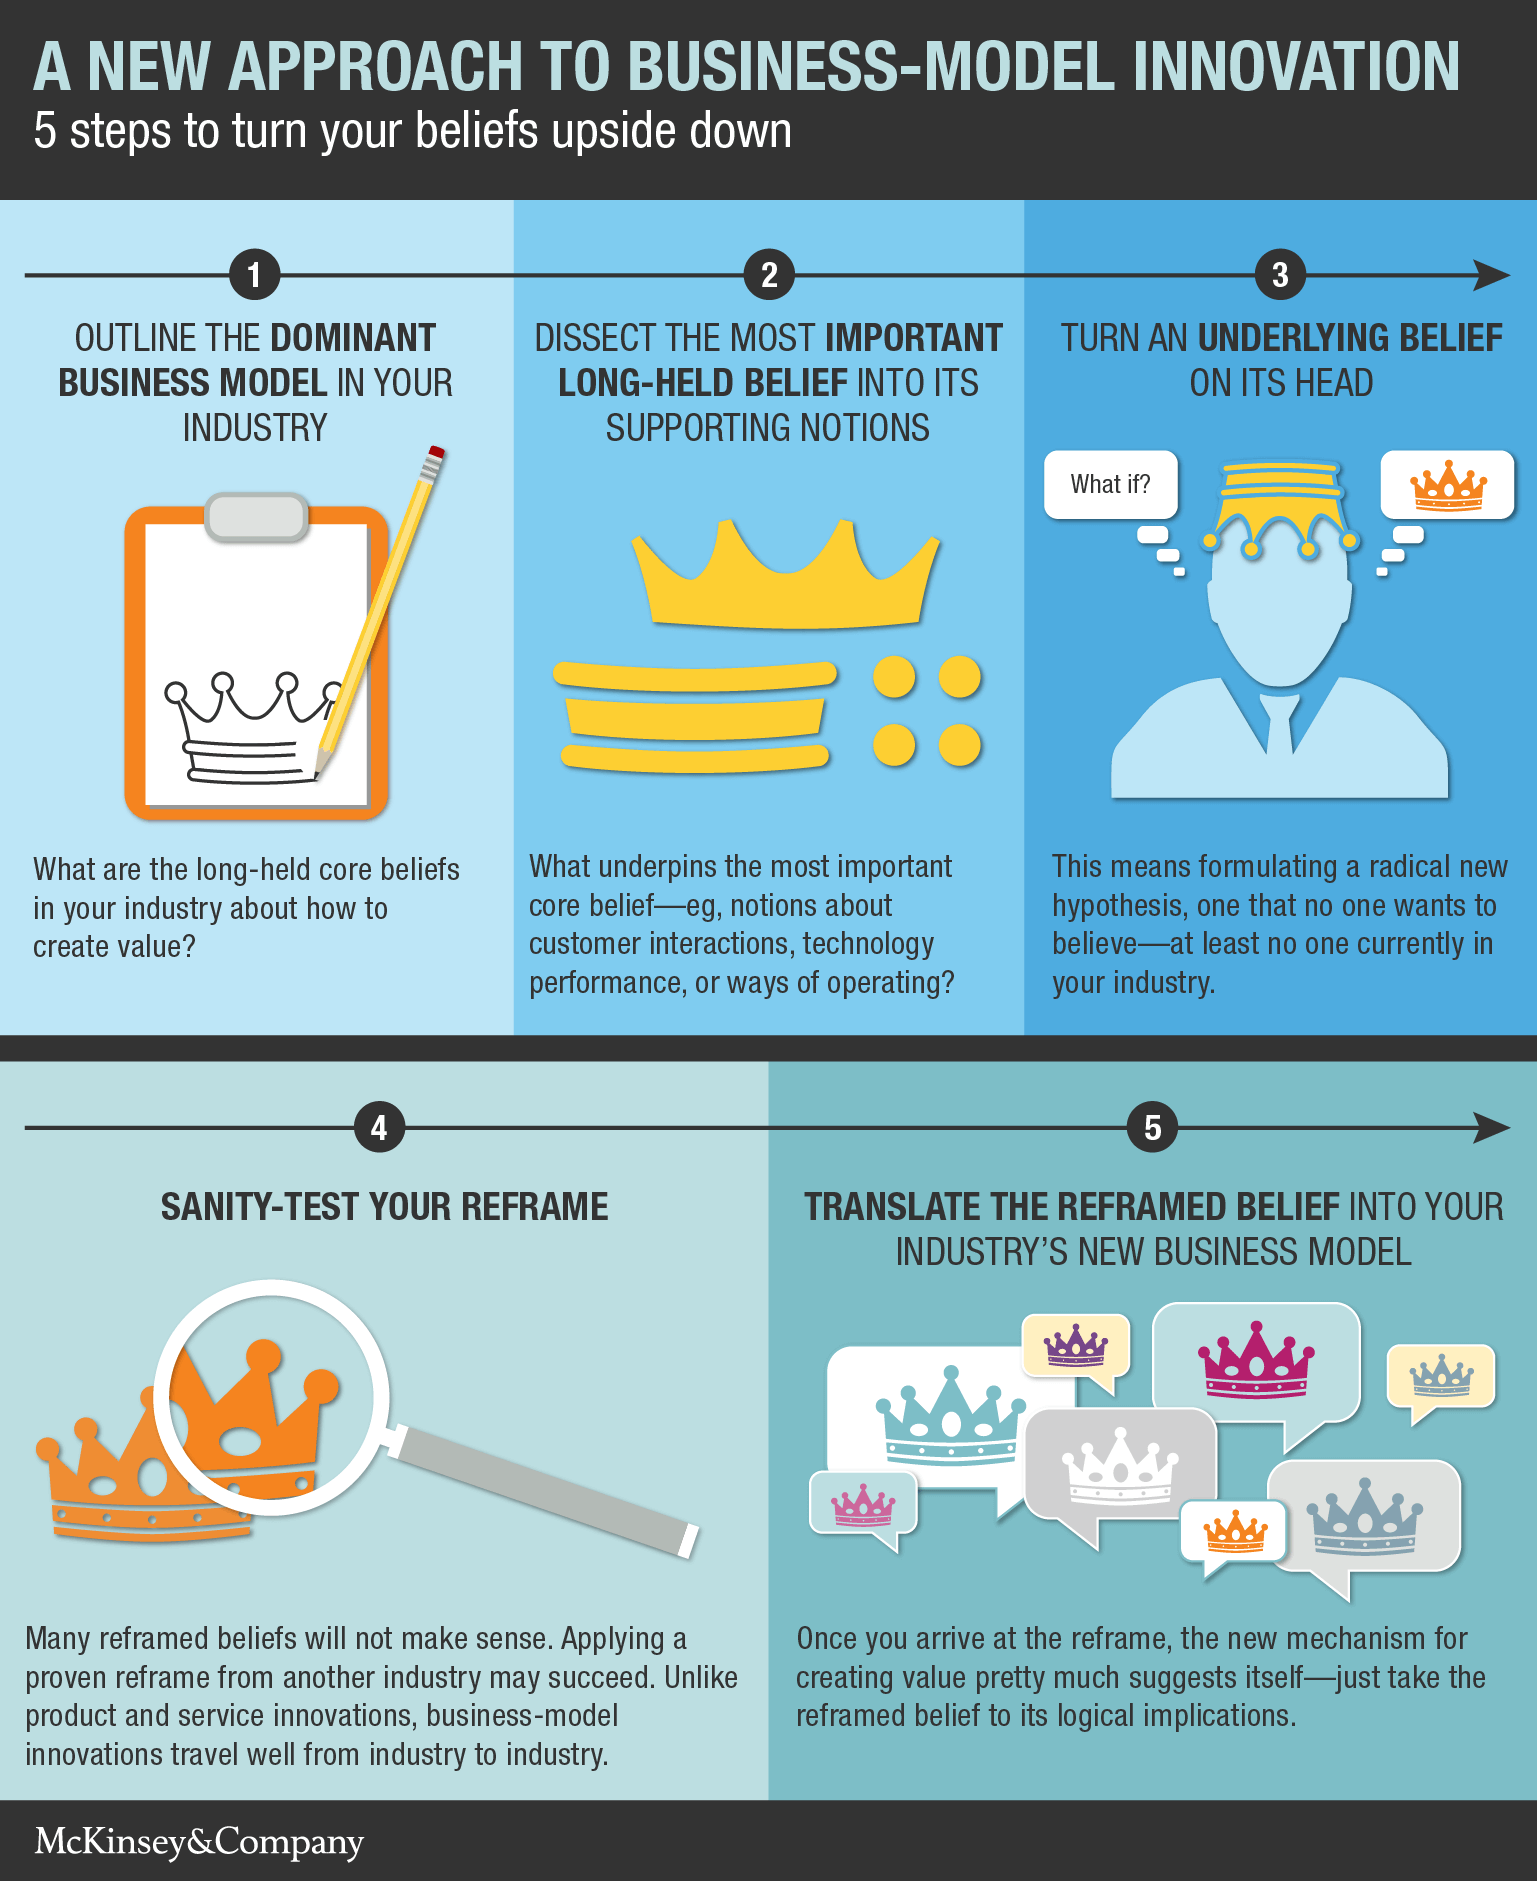 Disrupting Beliefs A New Approach To Business Model Innovation Way Switch Proceeds 4 3 At Five Steps Infographic The Fuller Process And Questions Ask Along Look Like